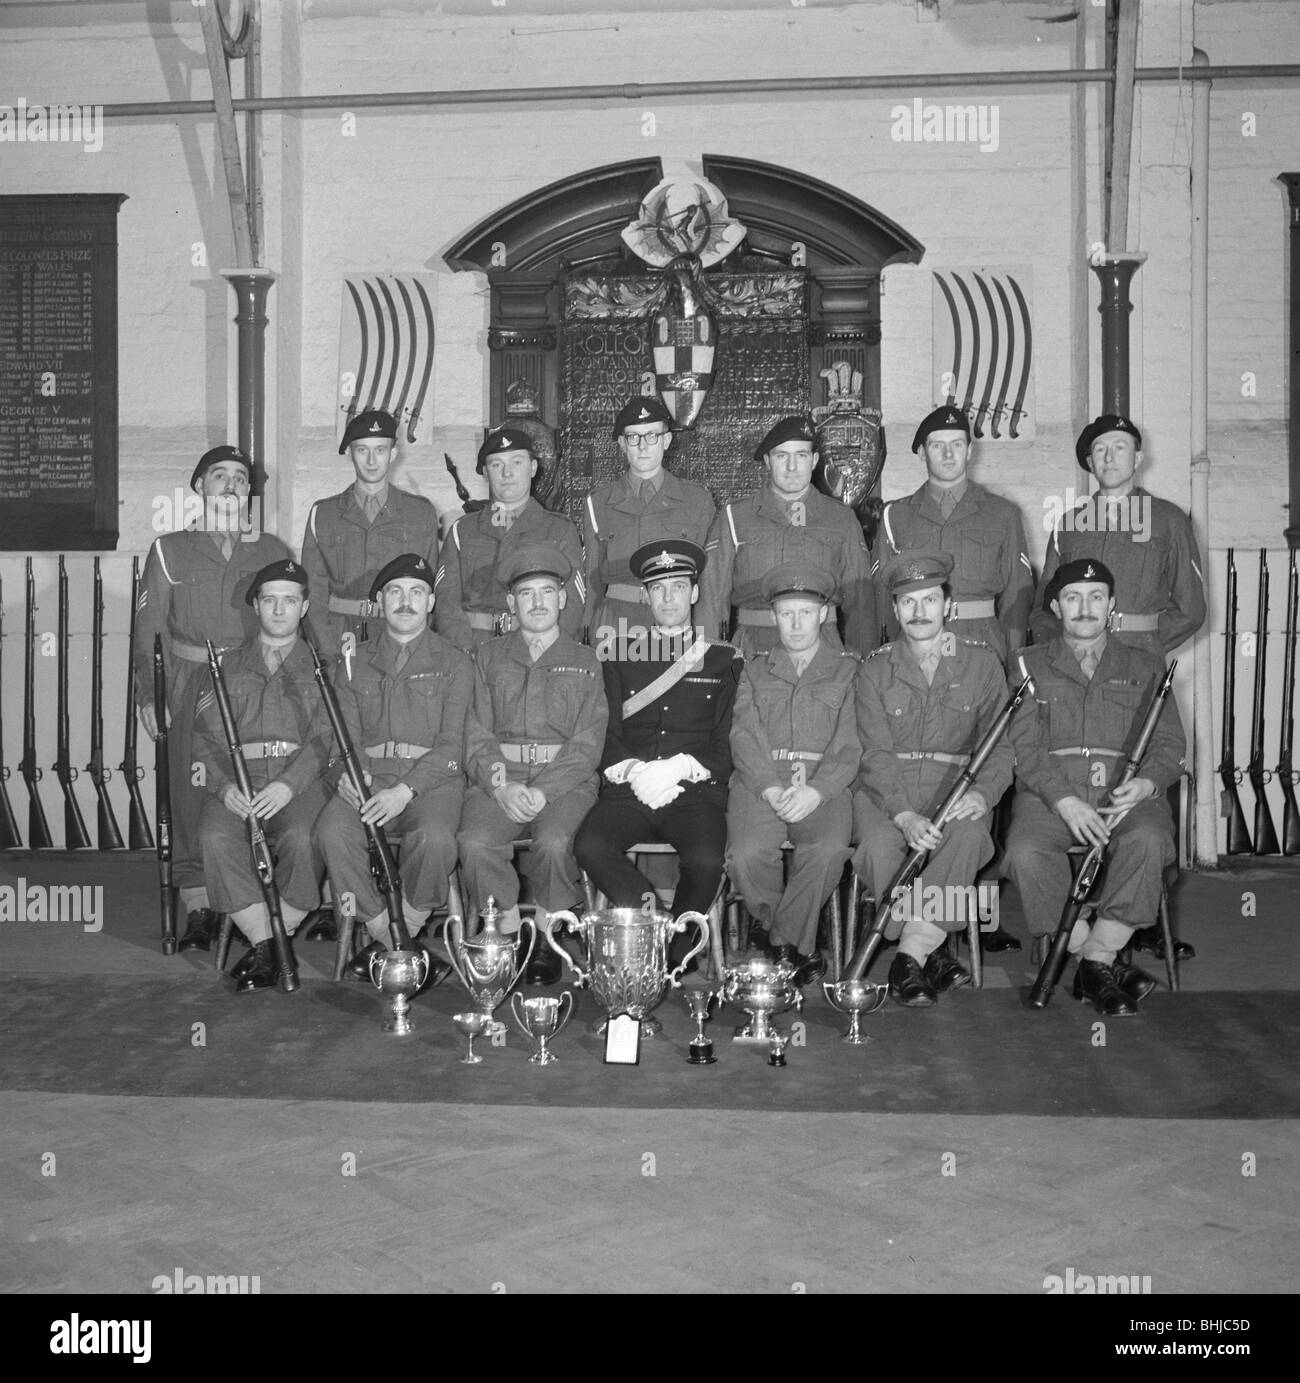 Soldiers and their officer in front of the Honourable Artillery Company's War Memorial, c1945-c1965. Artist: - Stock Image